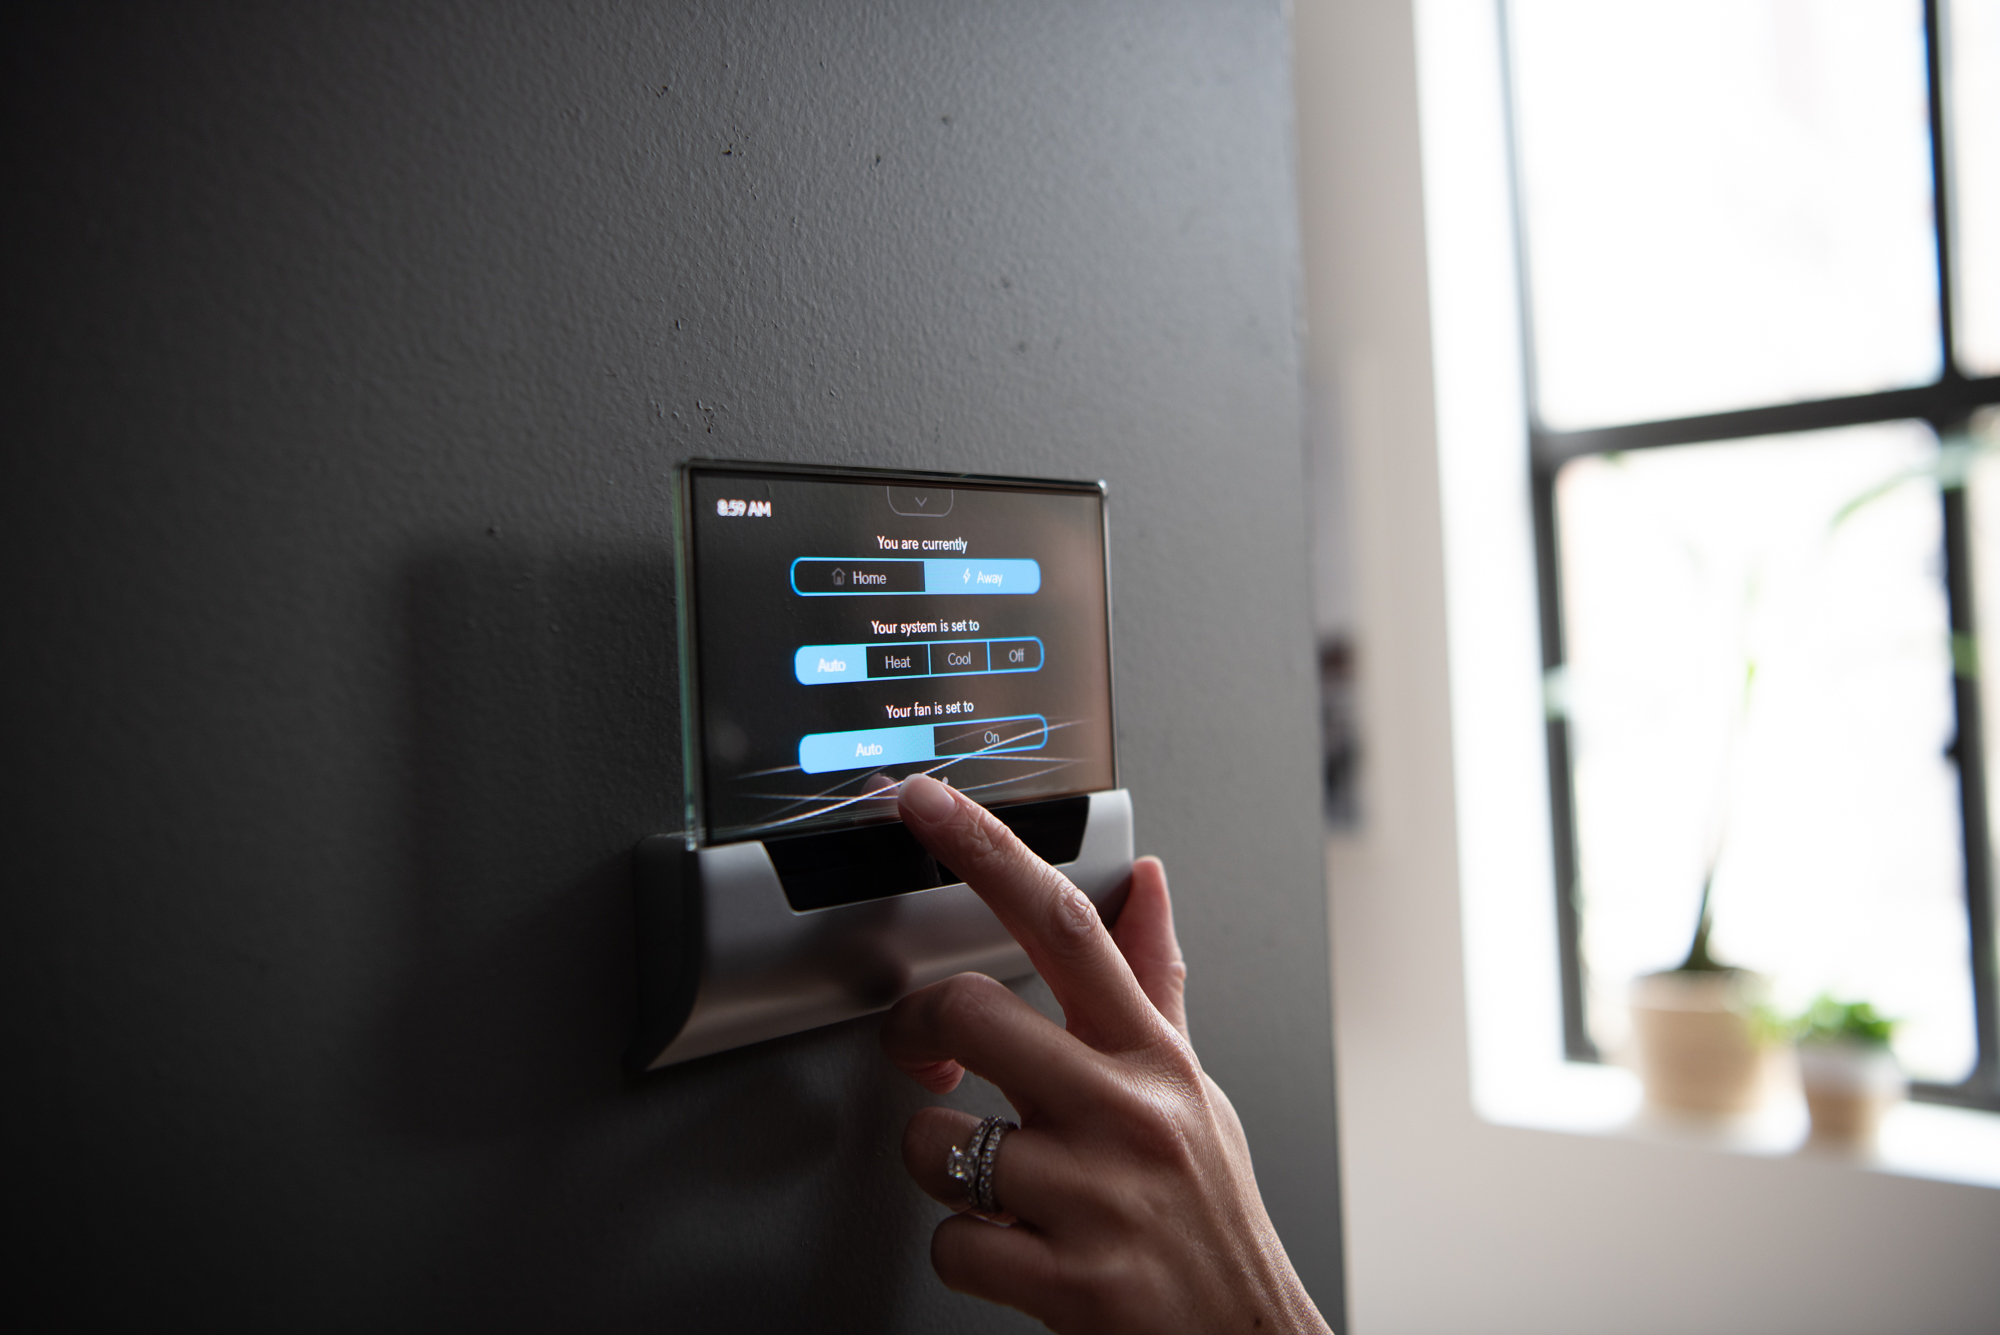 10. GLAS SMART THERMOSTAT - (This is a paid collaboration with GLAS Thermostat by Johnson Controls)Not many of you may guess this, but I'm a sucker for a good marriage between design and technology. After all, I'm secretly a nerd at heart. I love the elevated design of the GLAS smart home thermostat that will go with any corner of your home— plus you can access, control and schedule the temperature straight from your phone. Bonus: It is compatible with most smart home devices. I'm into it.—$319